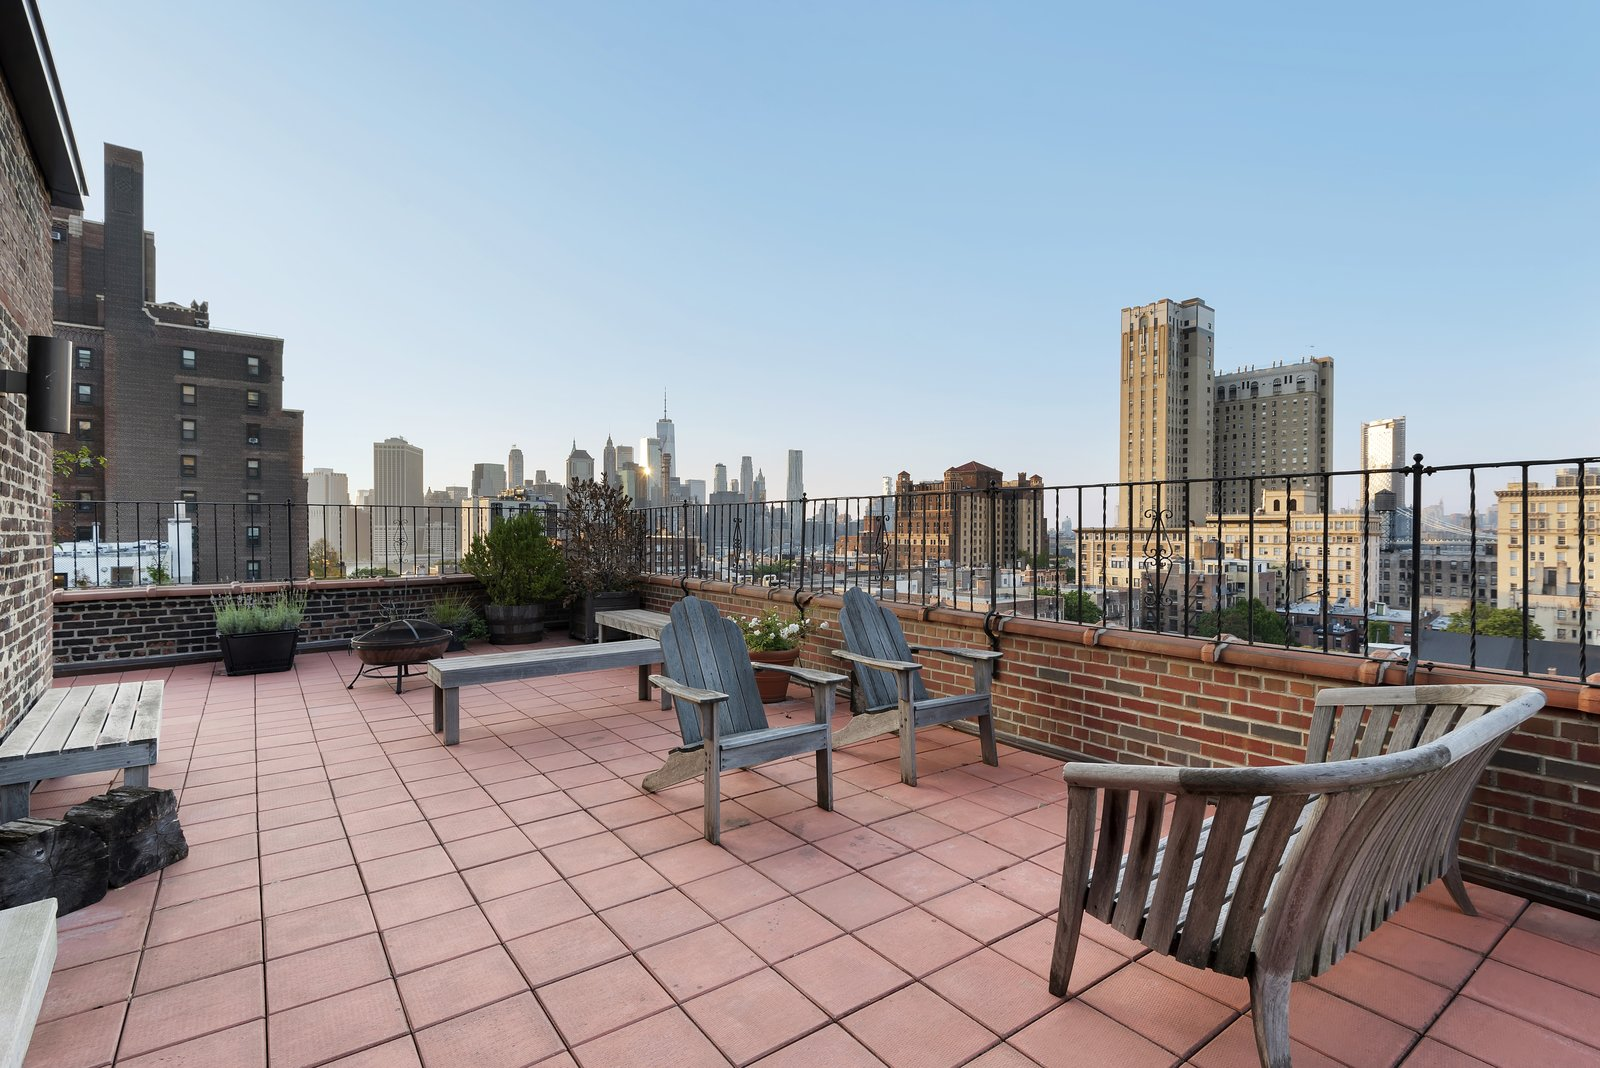 Outdoor, Rooftop, Large Patio, Porch, Deck, Hanging Lighting, Vertical Fences, Wall, Tile Patio, Porch, Deck, Raised Planters, and Metal Fences, Wall The terrace also features killer New York City views.   Photo 3 of 12 in Björk Puts Her Brooklyn Heights Penthouse on the Market For $9M